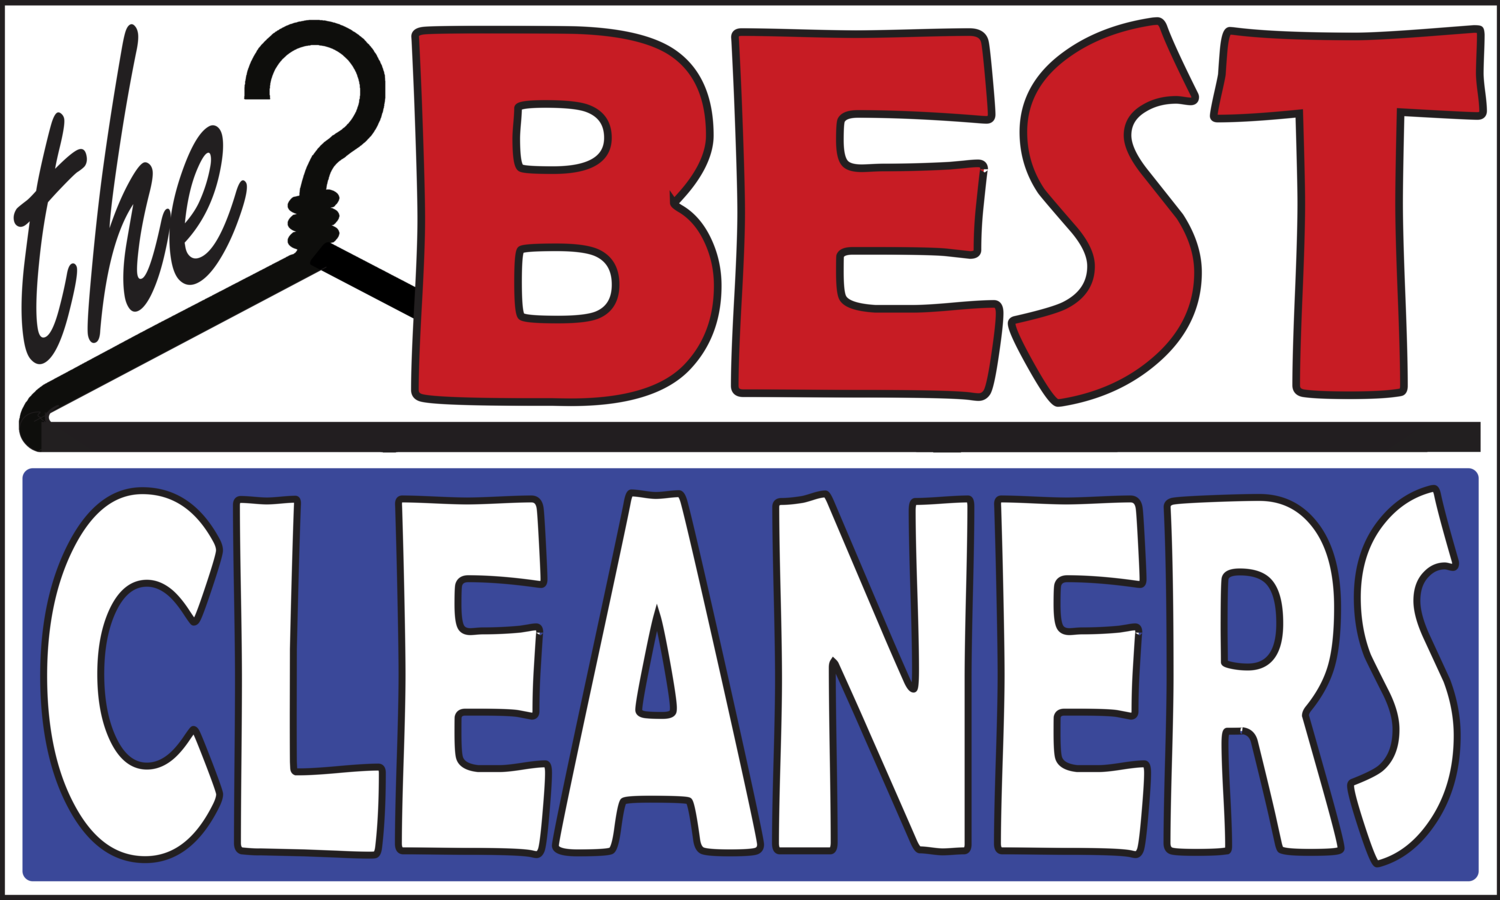 Our business specializes in giving our customers a peace of mind. We provide a range of products and services such as allergen, dust mites, and bacteria removal from all fabric.